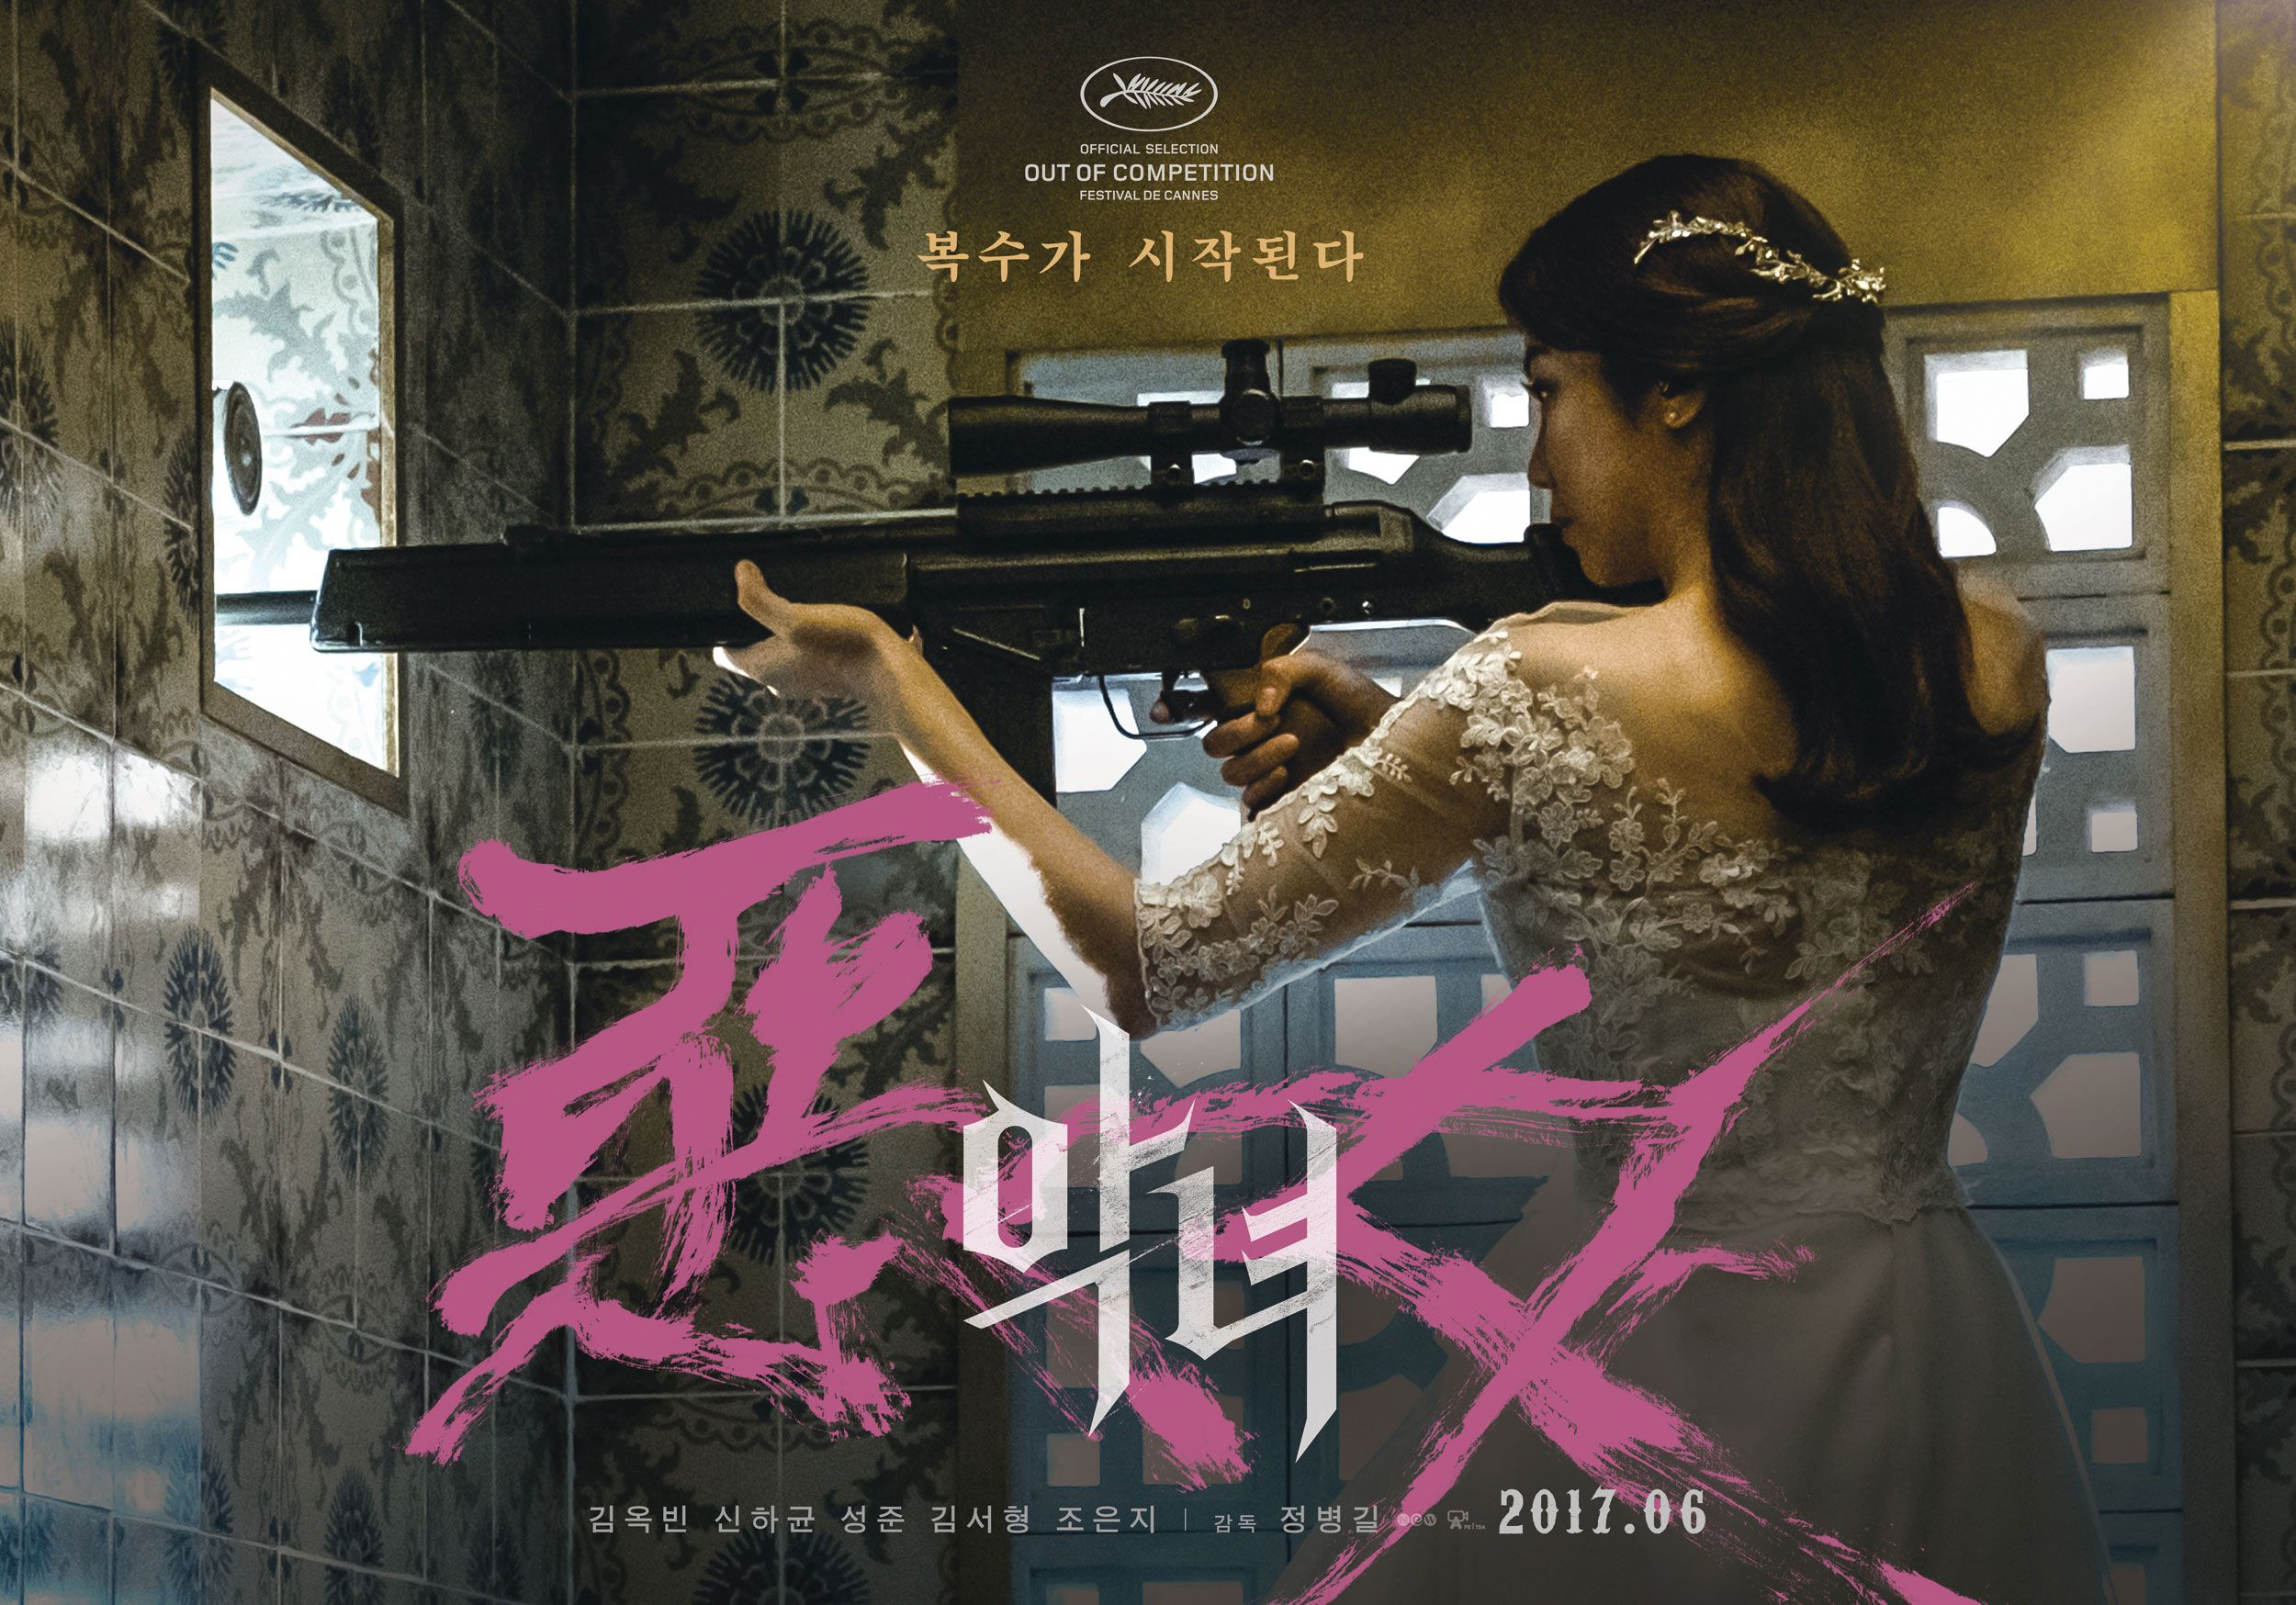 The Villainess - Kim Ok-bin as Sook-hee - Shin Ha-kyun as Lee Joong-sang - Sung Joon as Jung Hyun-soo - Kim Seo-hyung as Kwon-sook - Jo Eun-ji as Kim Sun - poster action thriller